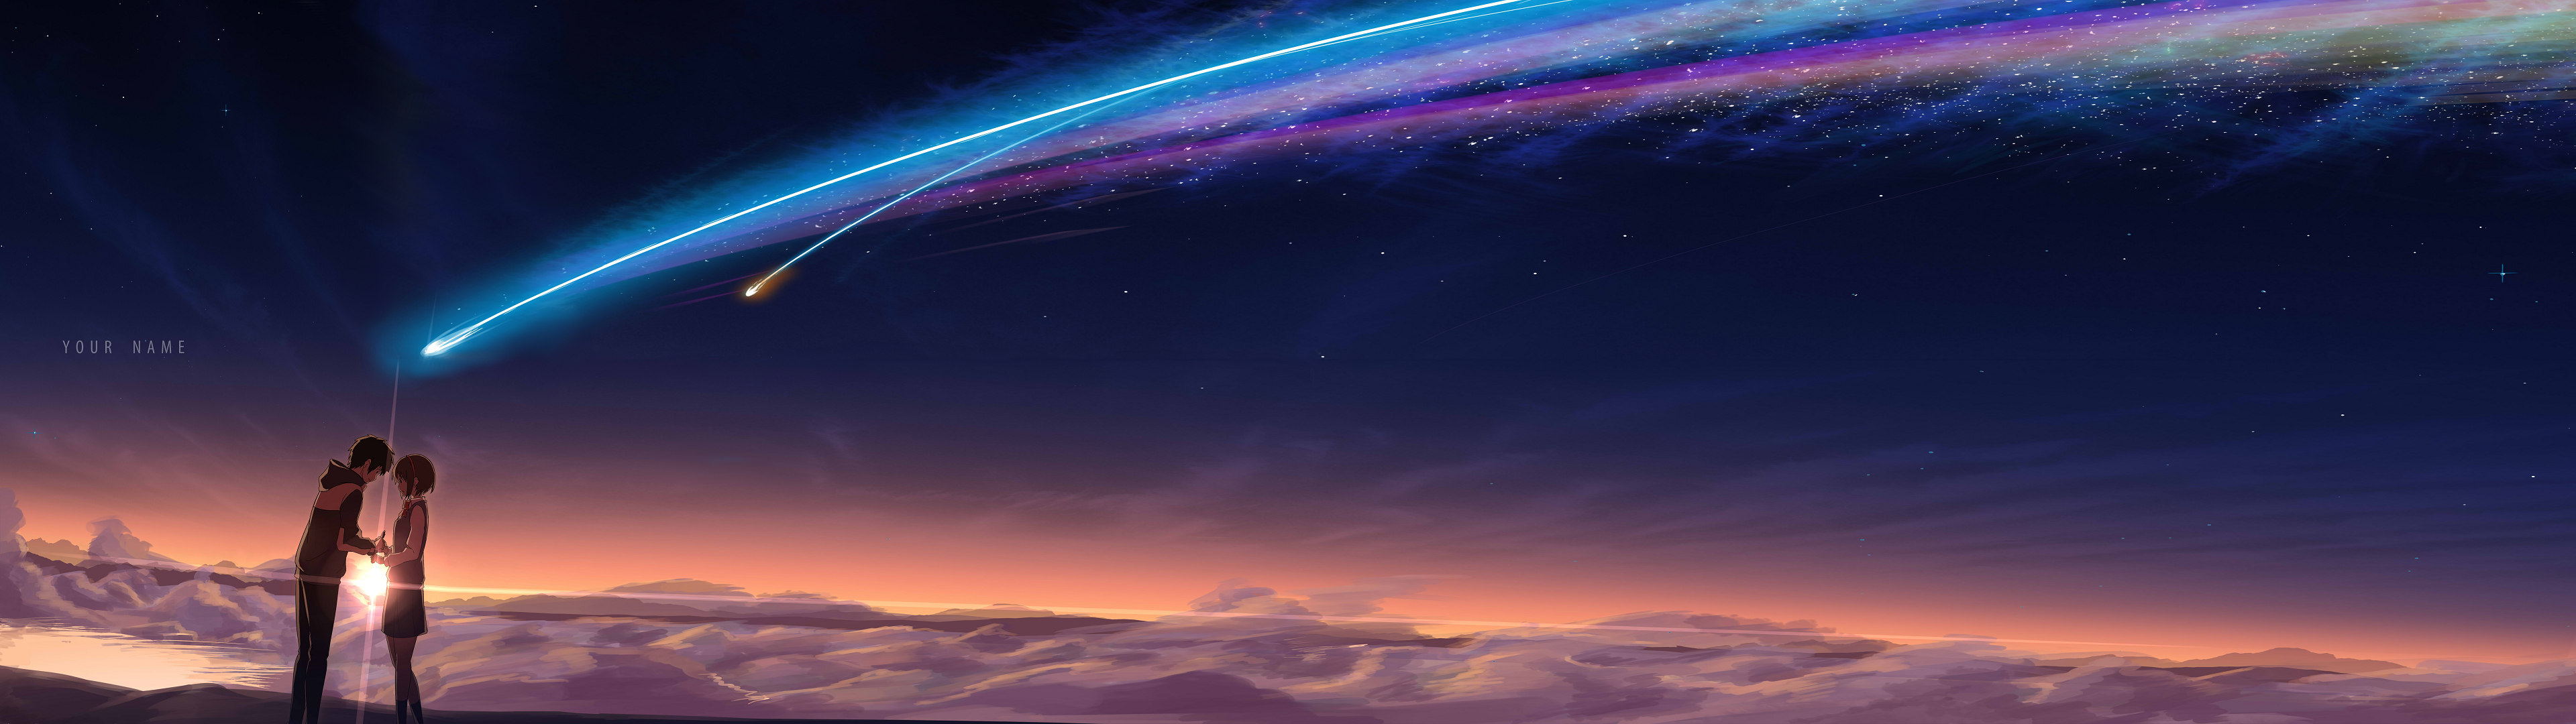 Your Name Dual Screen Wallpapers - Top ...